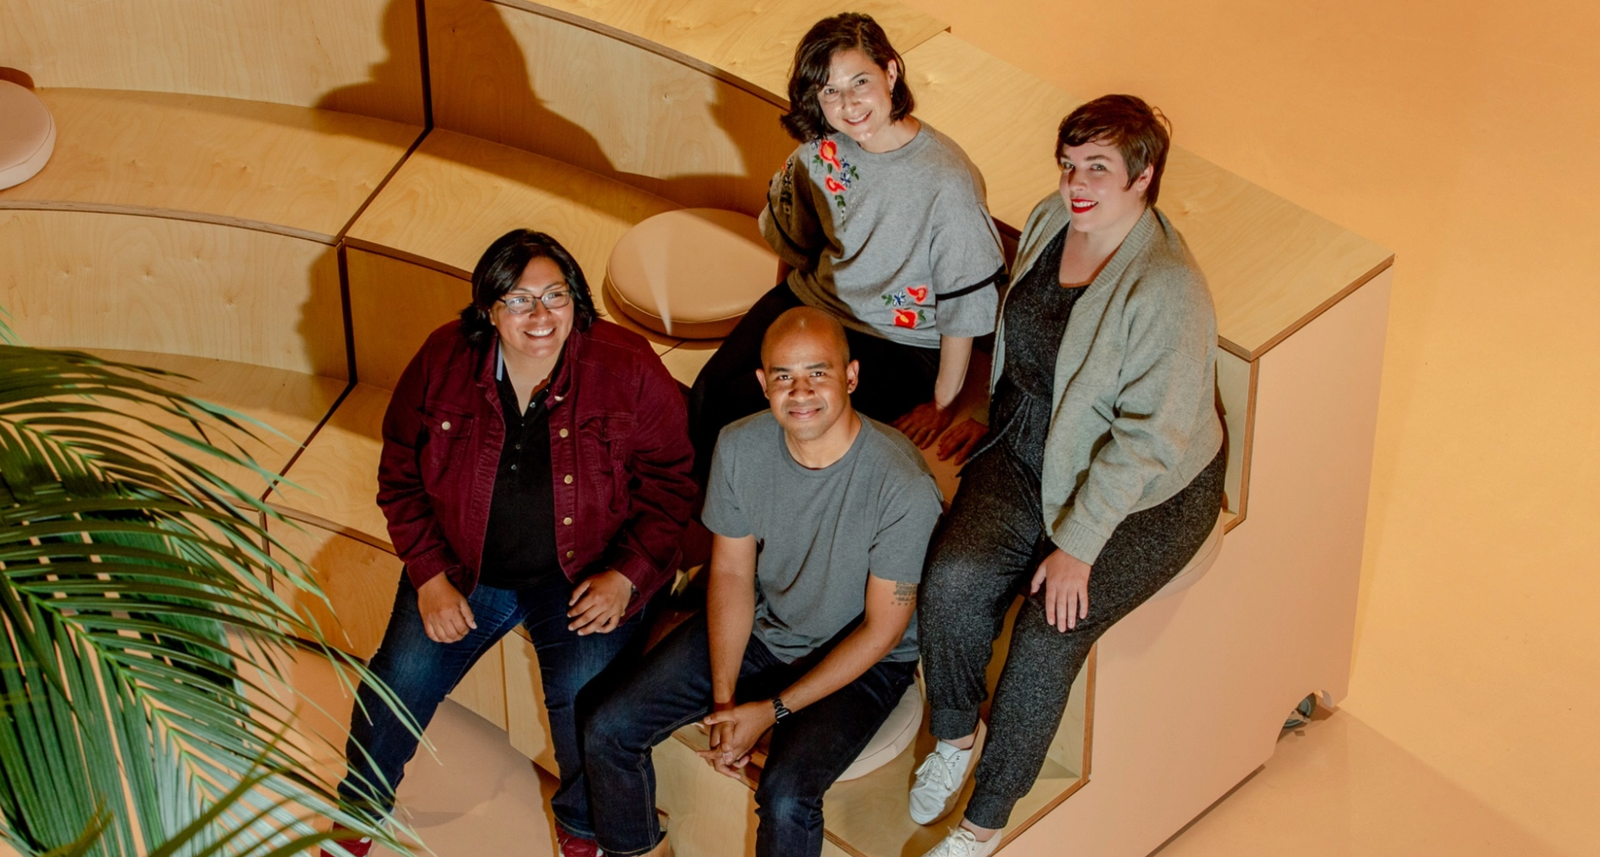 Clockwise from top: Roxy Aliaga, Michelle Morrison, Wes O'Haire, Tere Hernandez